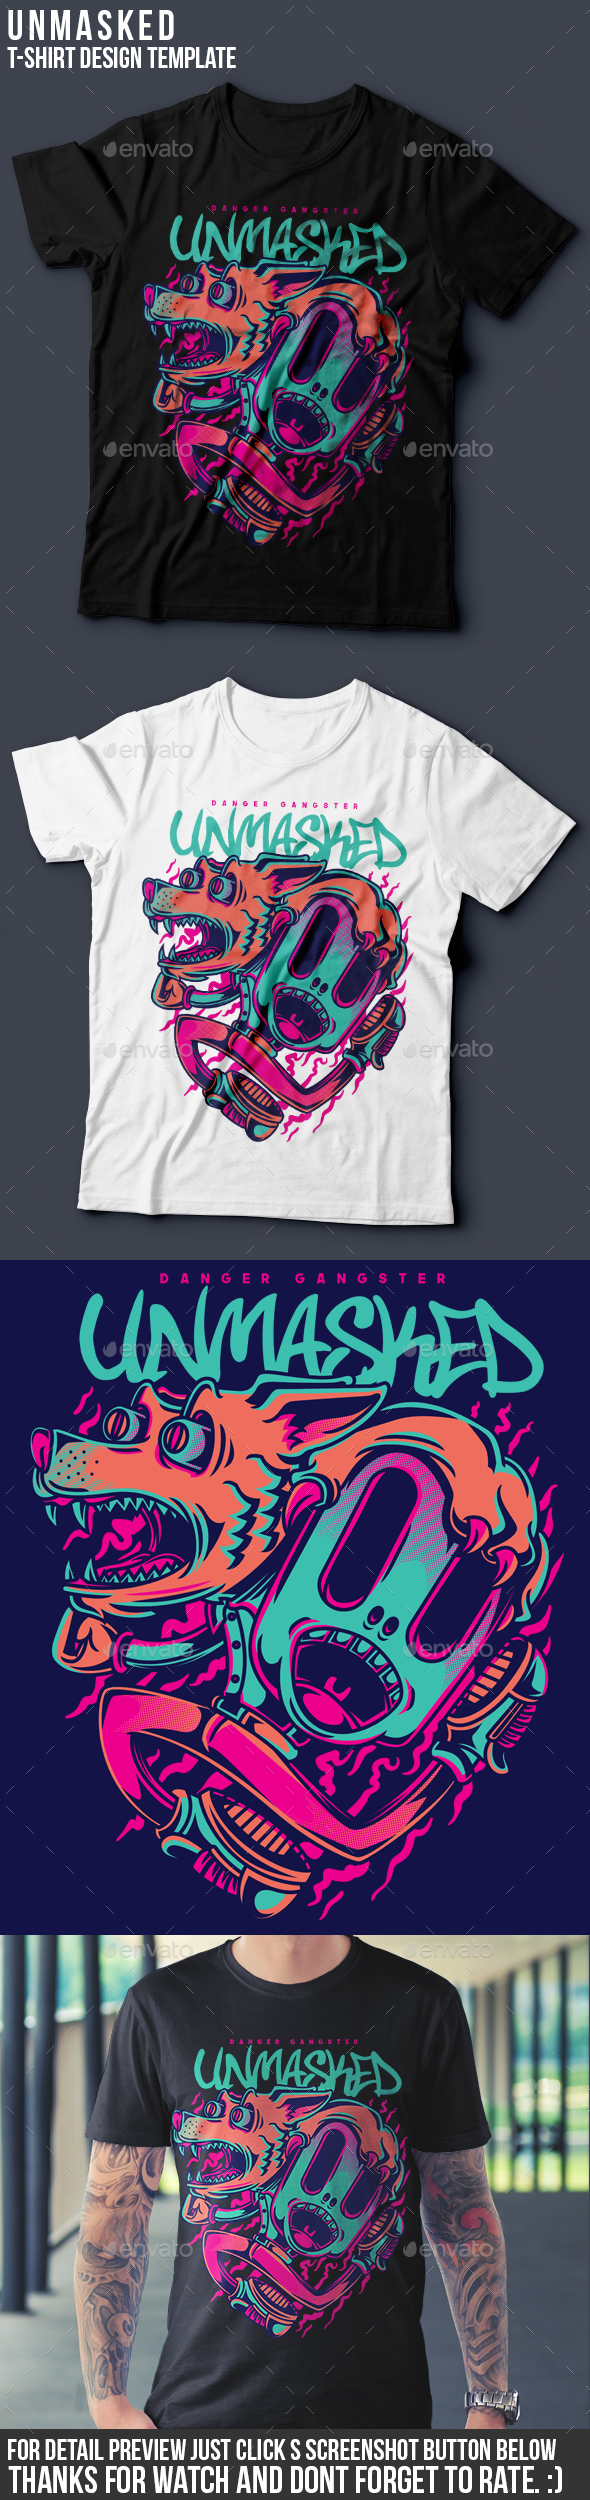 Unmasked T-Shirt Design - Funny Designs